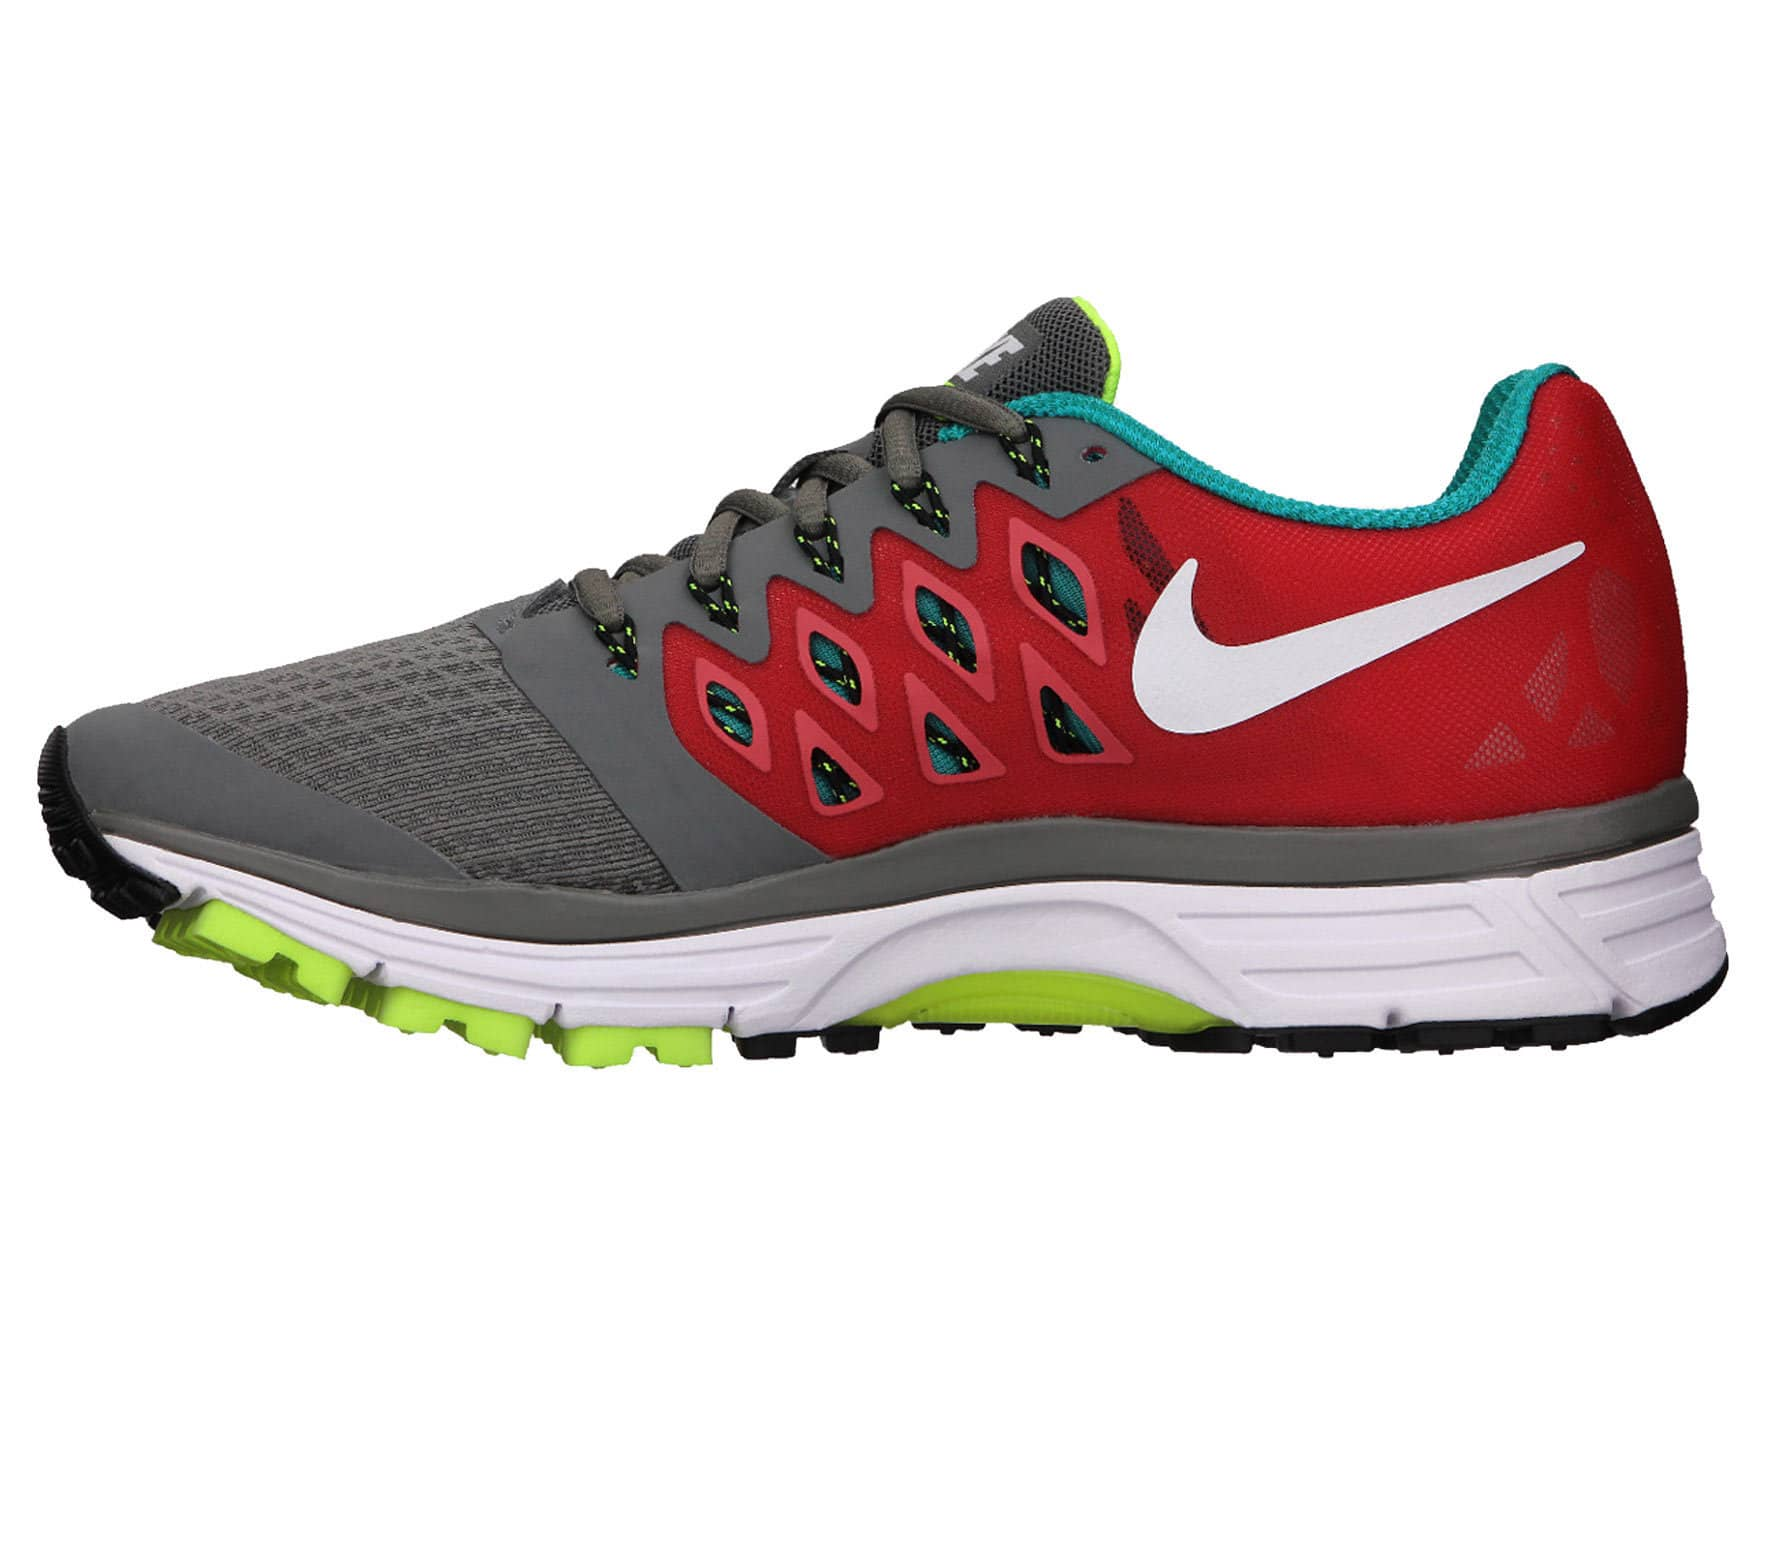 pick up more photos discount shop Nike - Zoom Vomero 9 women's running shoes (grey/green)